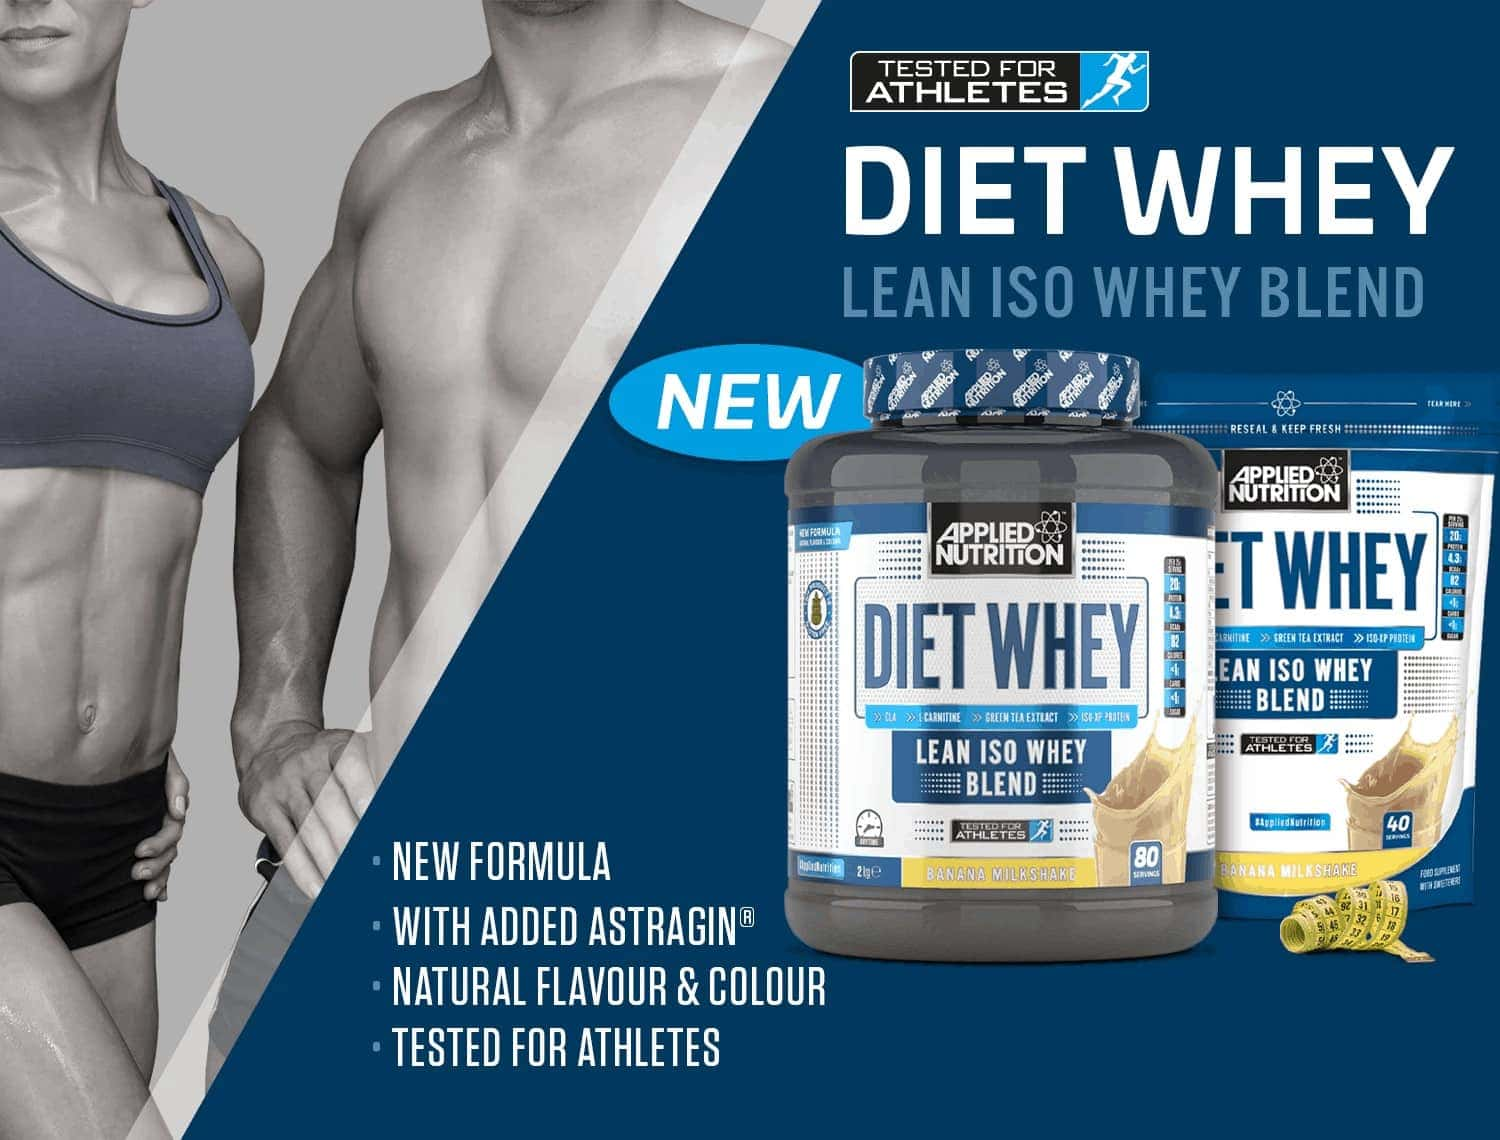 Applied Nutrition - Diet Whey (1KG) - diet whey 750x570 a05232af 07d6